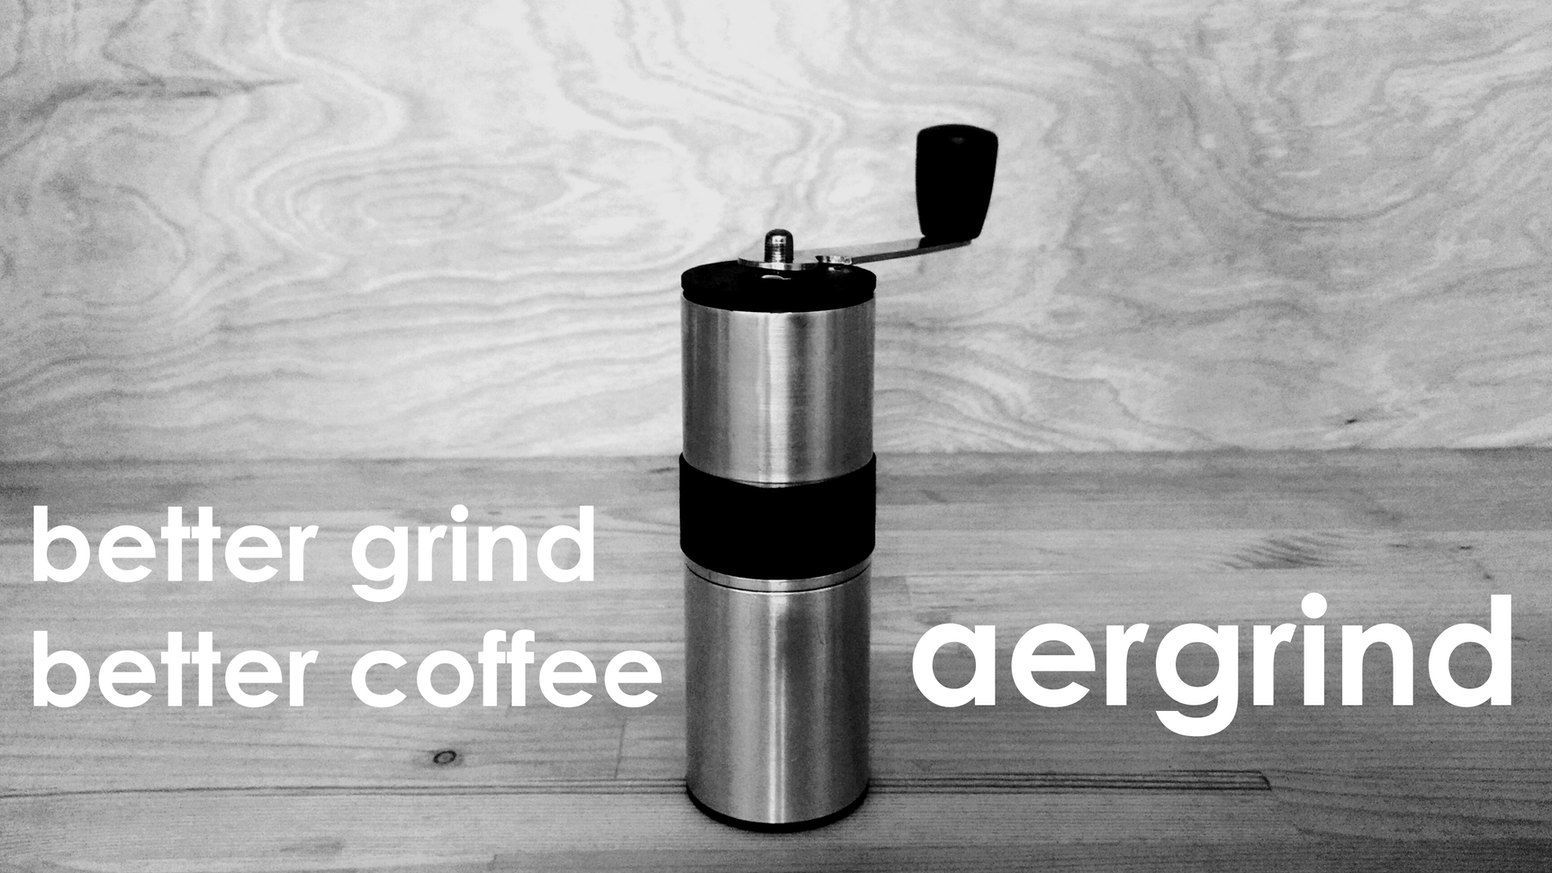 Meet the AERGRIND(tm), a new travel coffee grinder by Knock. Aeropress & V60 compatible, unparalleled grind consistency, speed & value.